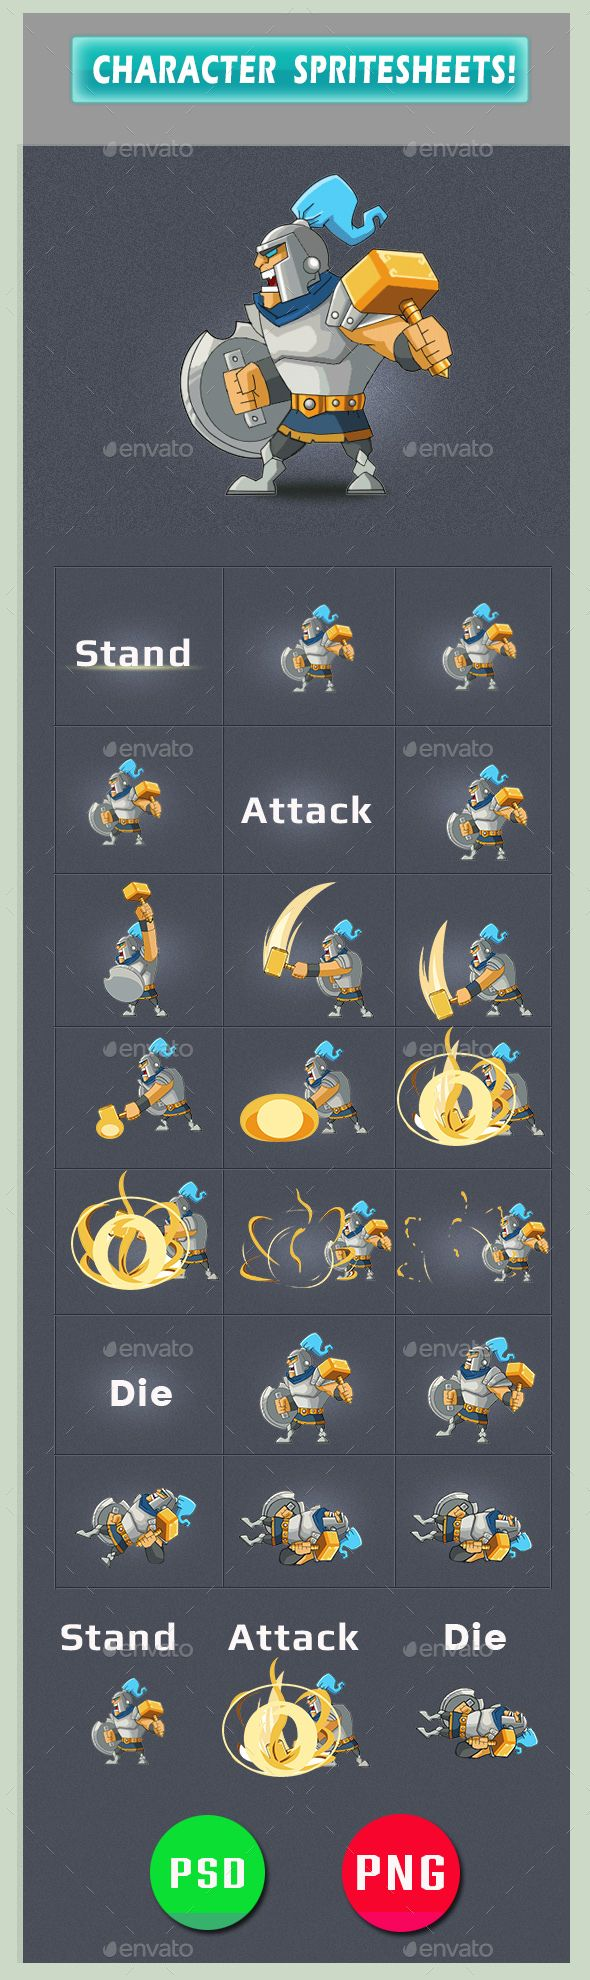 Enemy #Game Assets - Sprites Game #Assets Download here: https://graphicriver.net/item/enemy-game-assets/20288552?ref=alena994